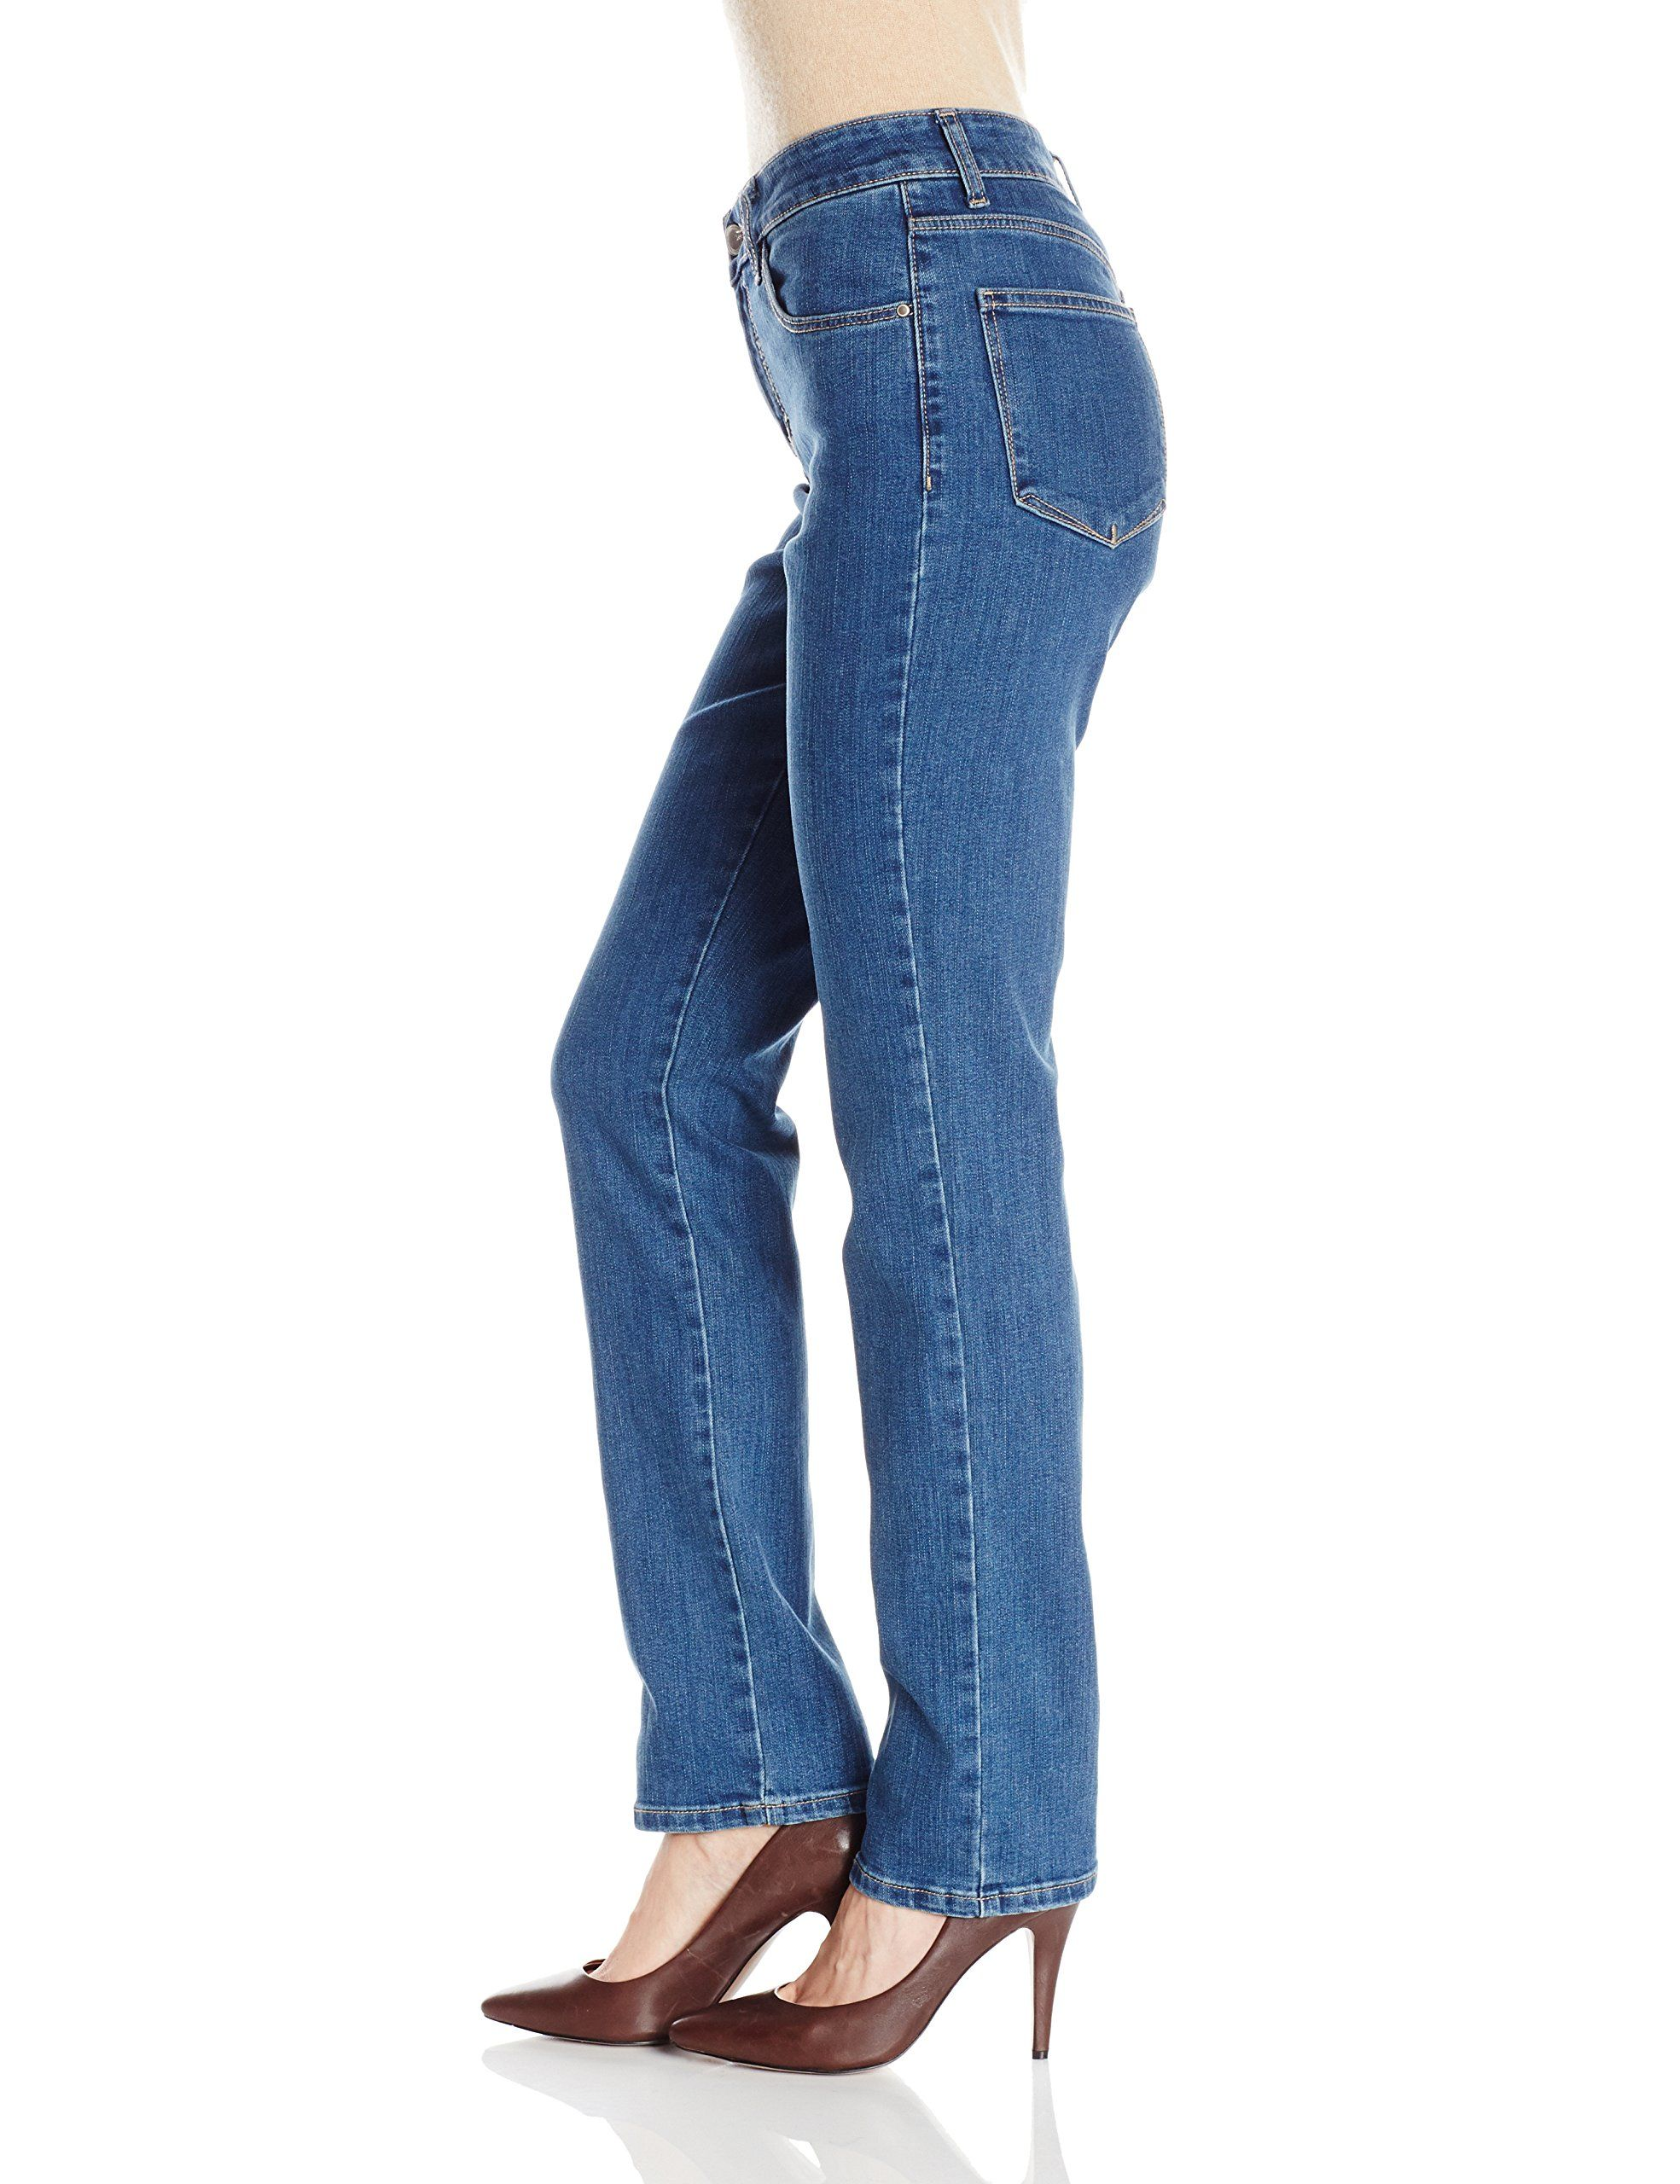 baaad704 LEE Womens Instantly Slims Classic Relaxed Fit Monroe Straight Leg Jean  Seattle 16 *** You can get more details by clicking on the image.